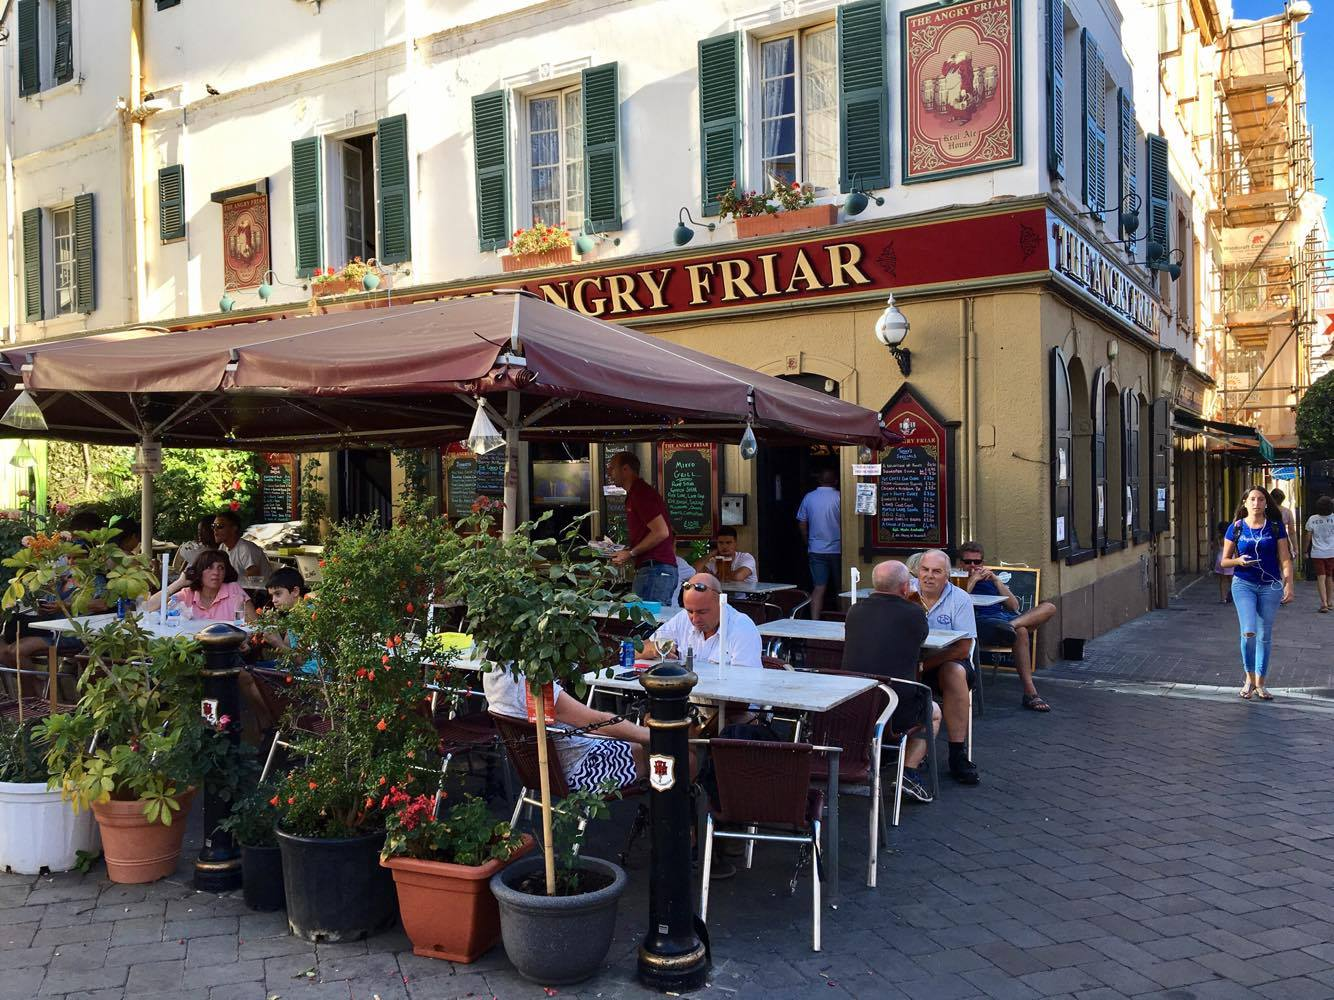 The Angry Friar restaurant in Gibraltar